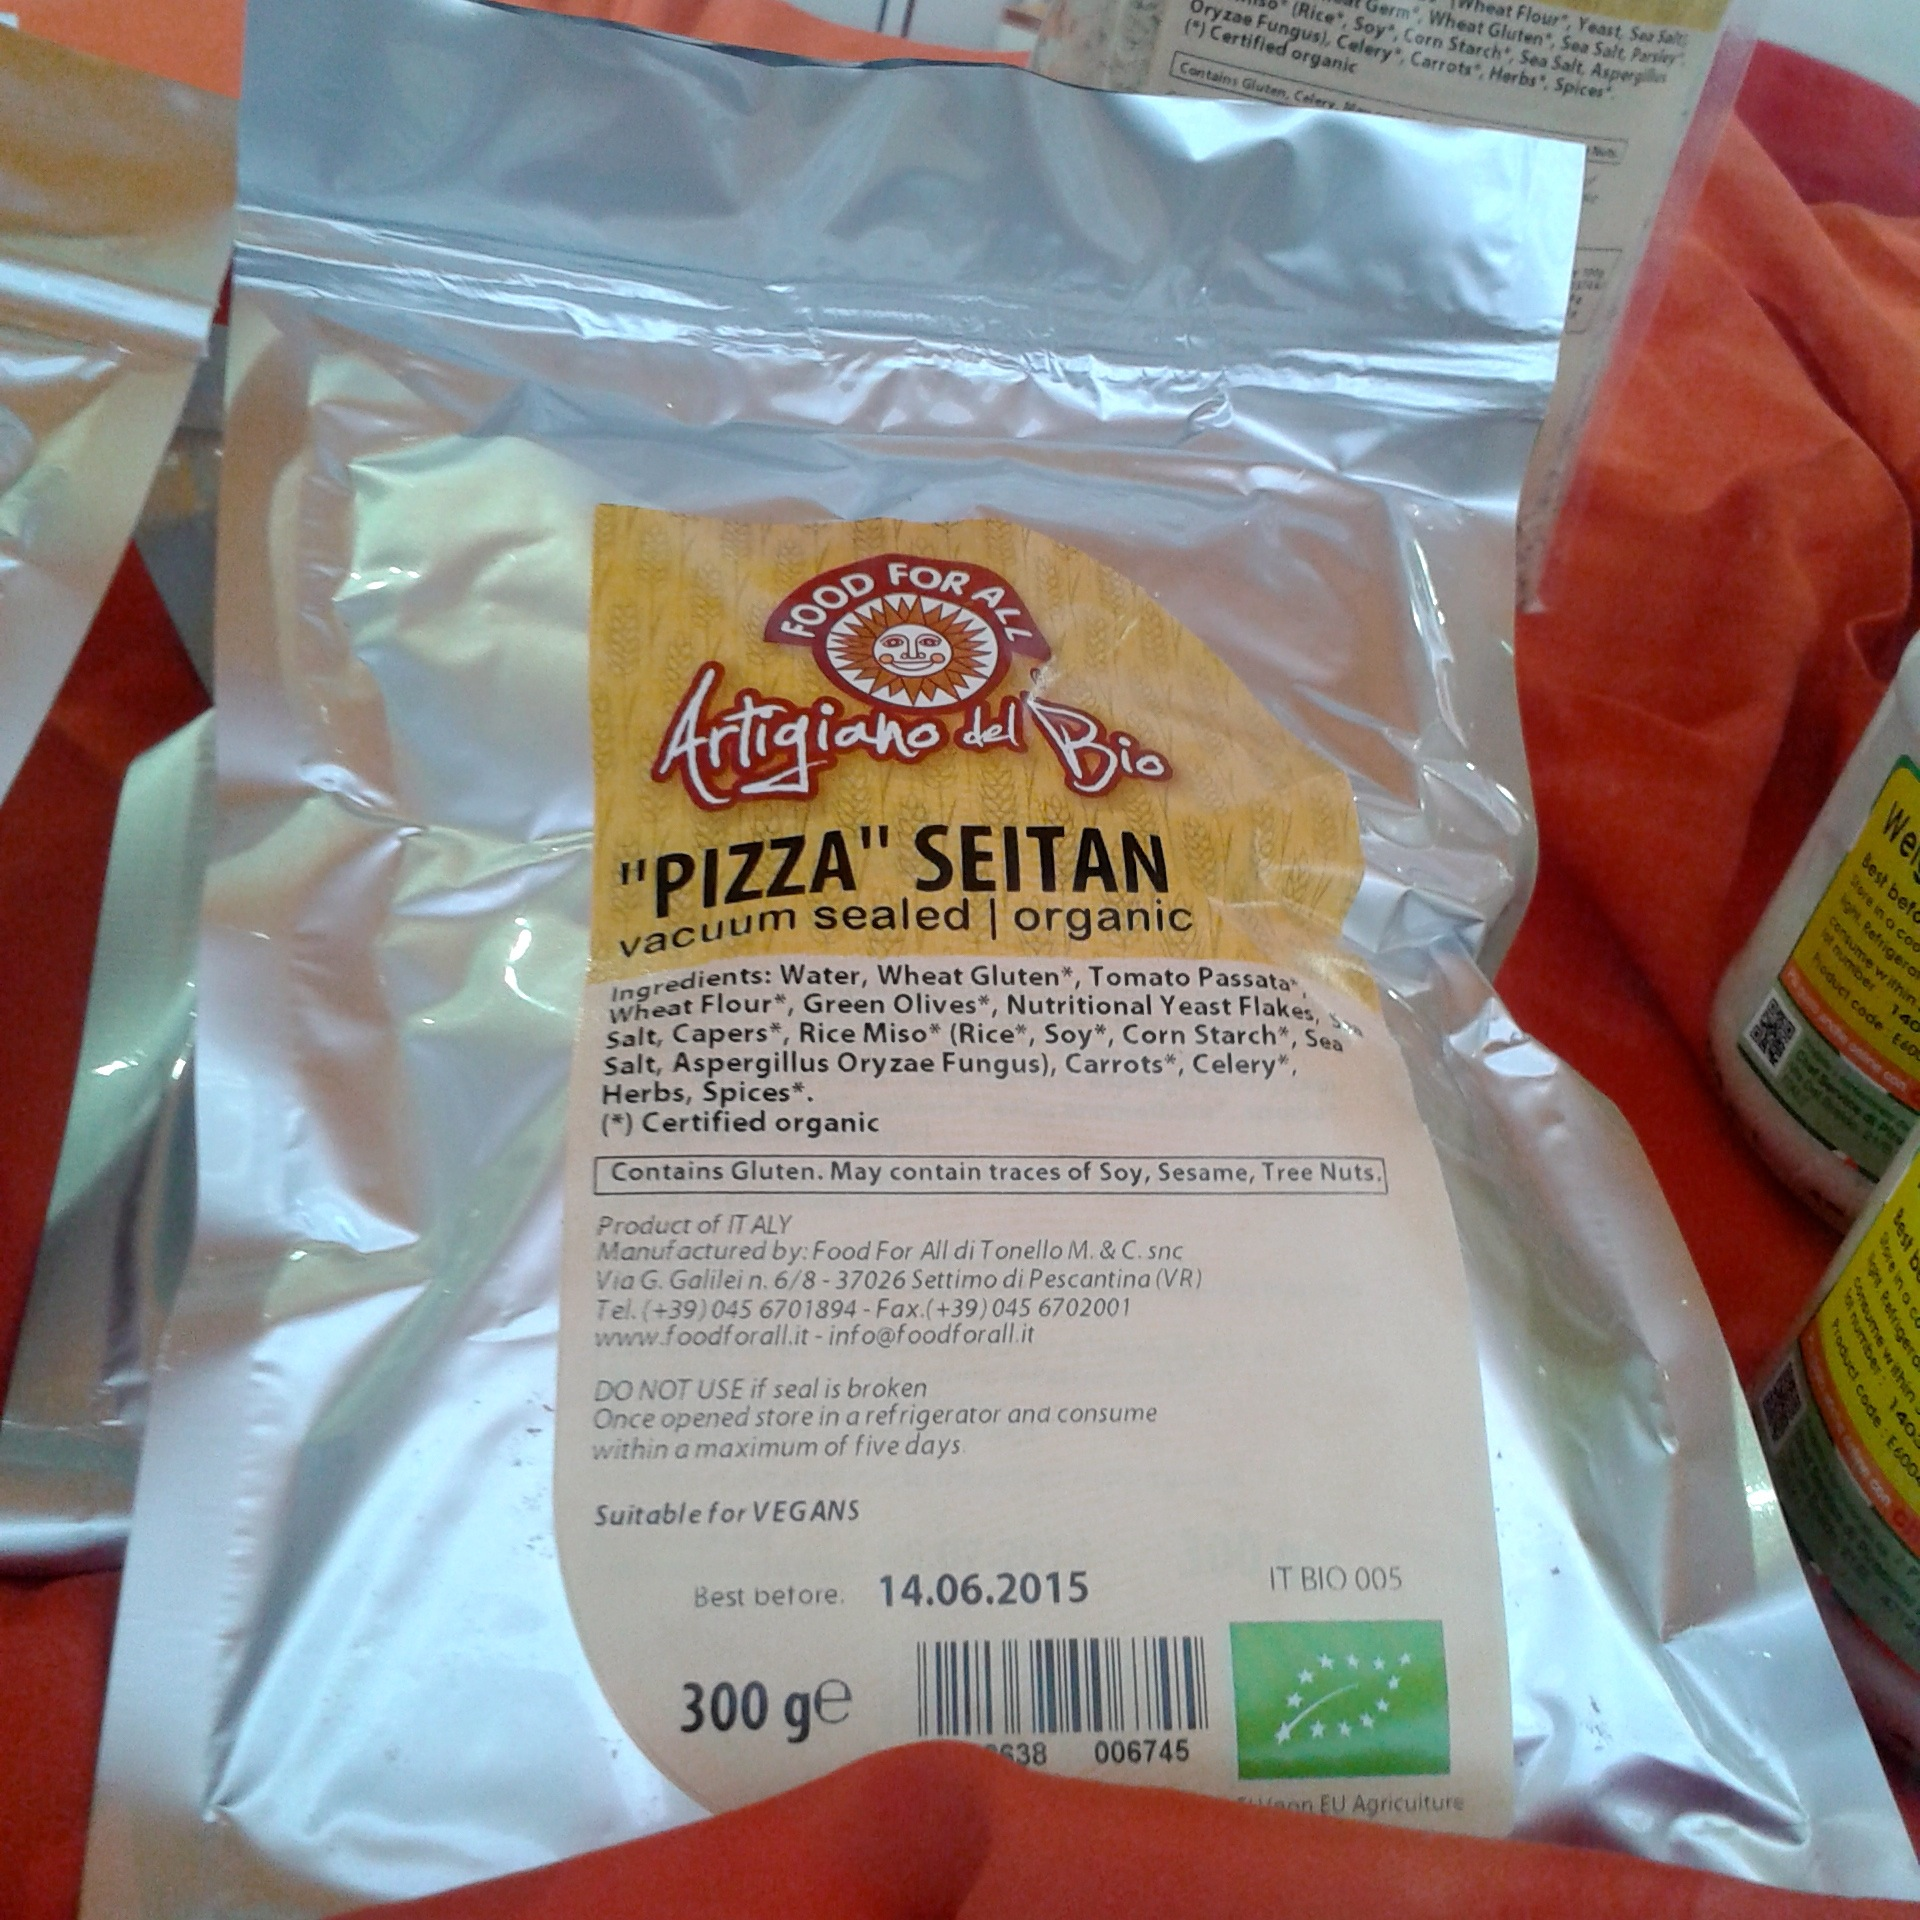 https://i1.wp.com/fatgayvegan.com/wp-content/uploads/2014/04/pizza-seitan.jpg?fit=1920%2C1920